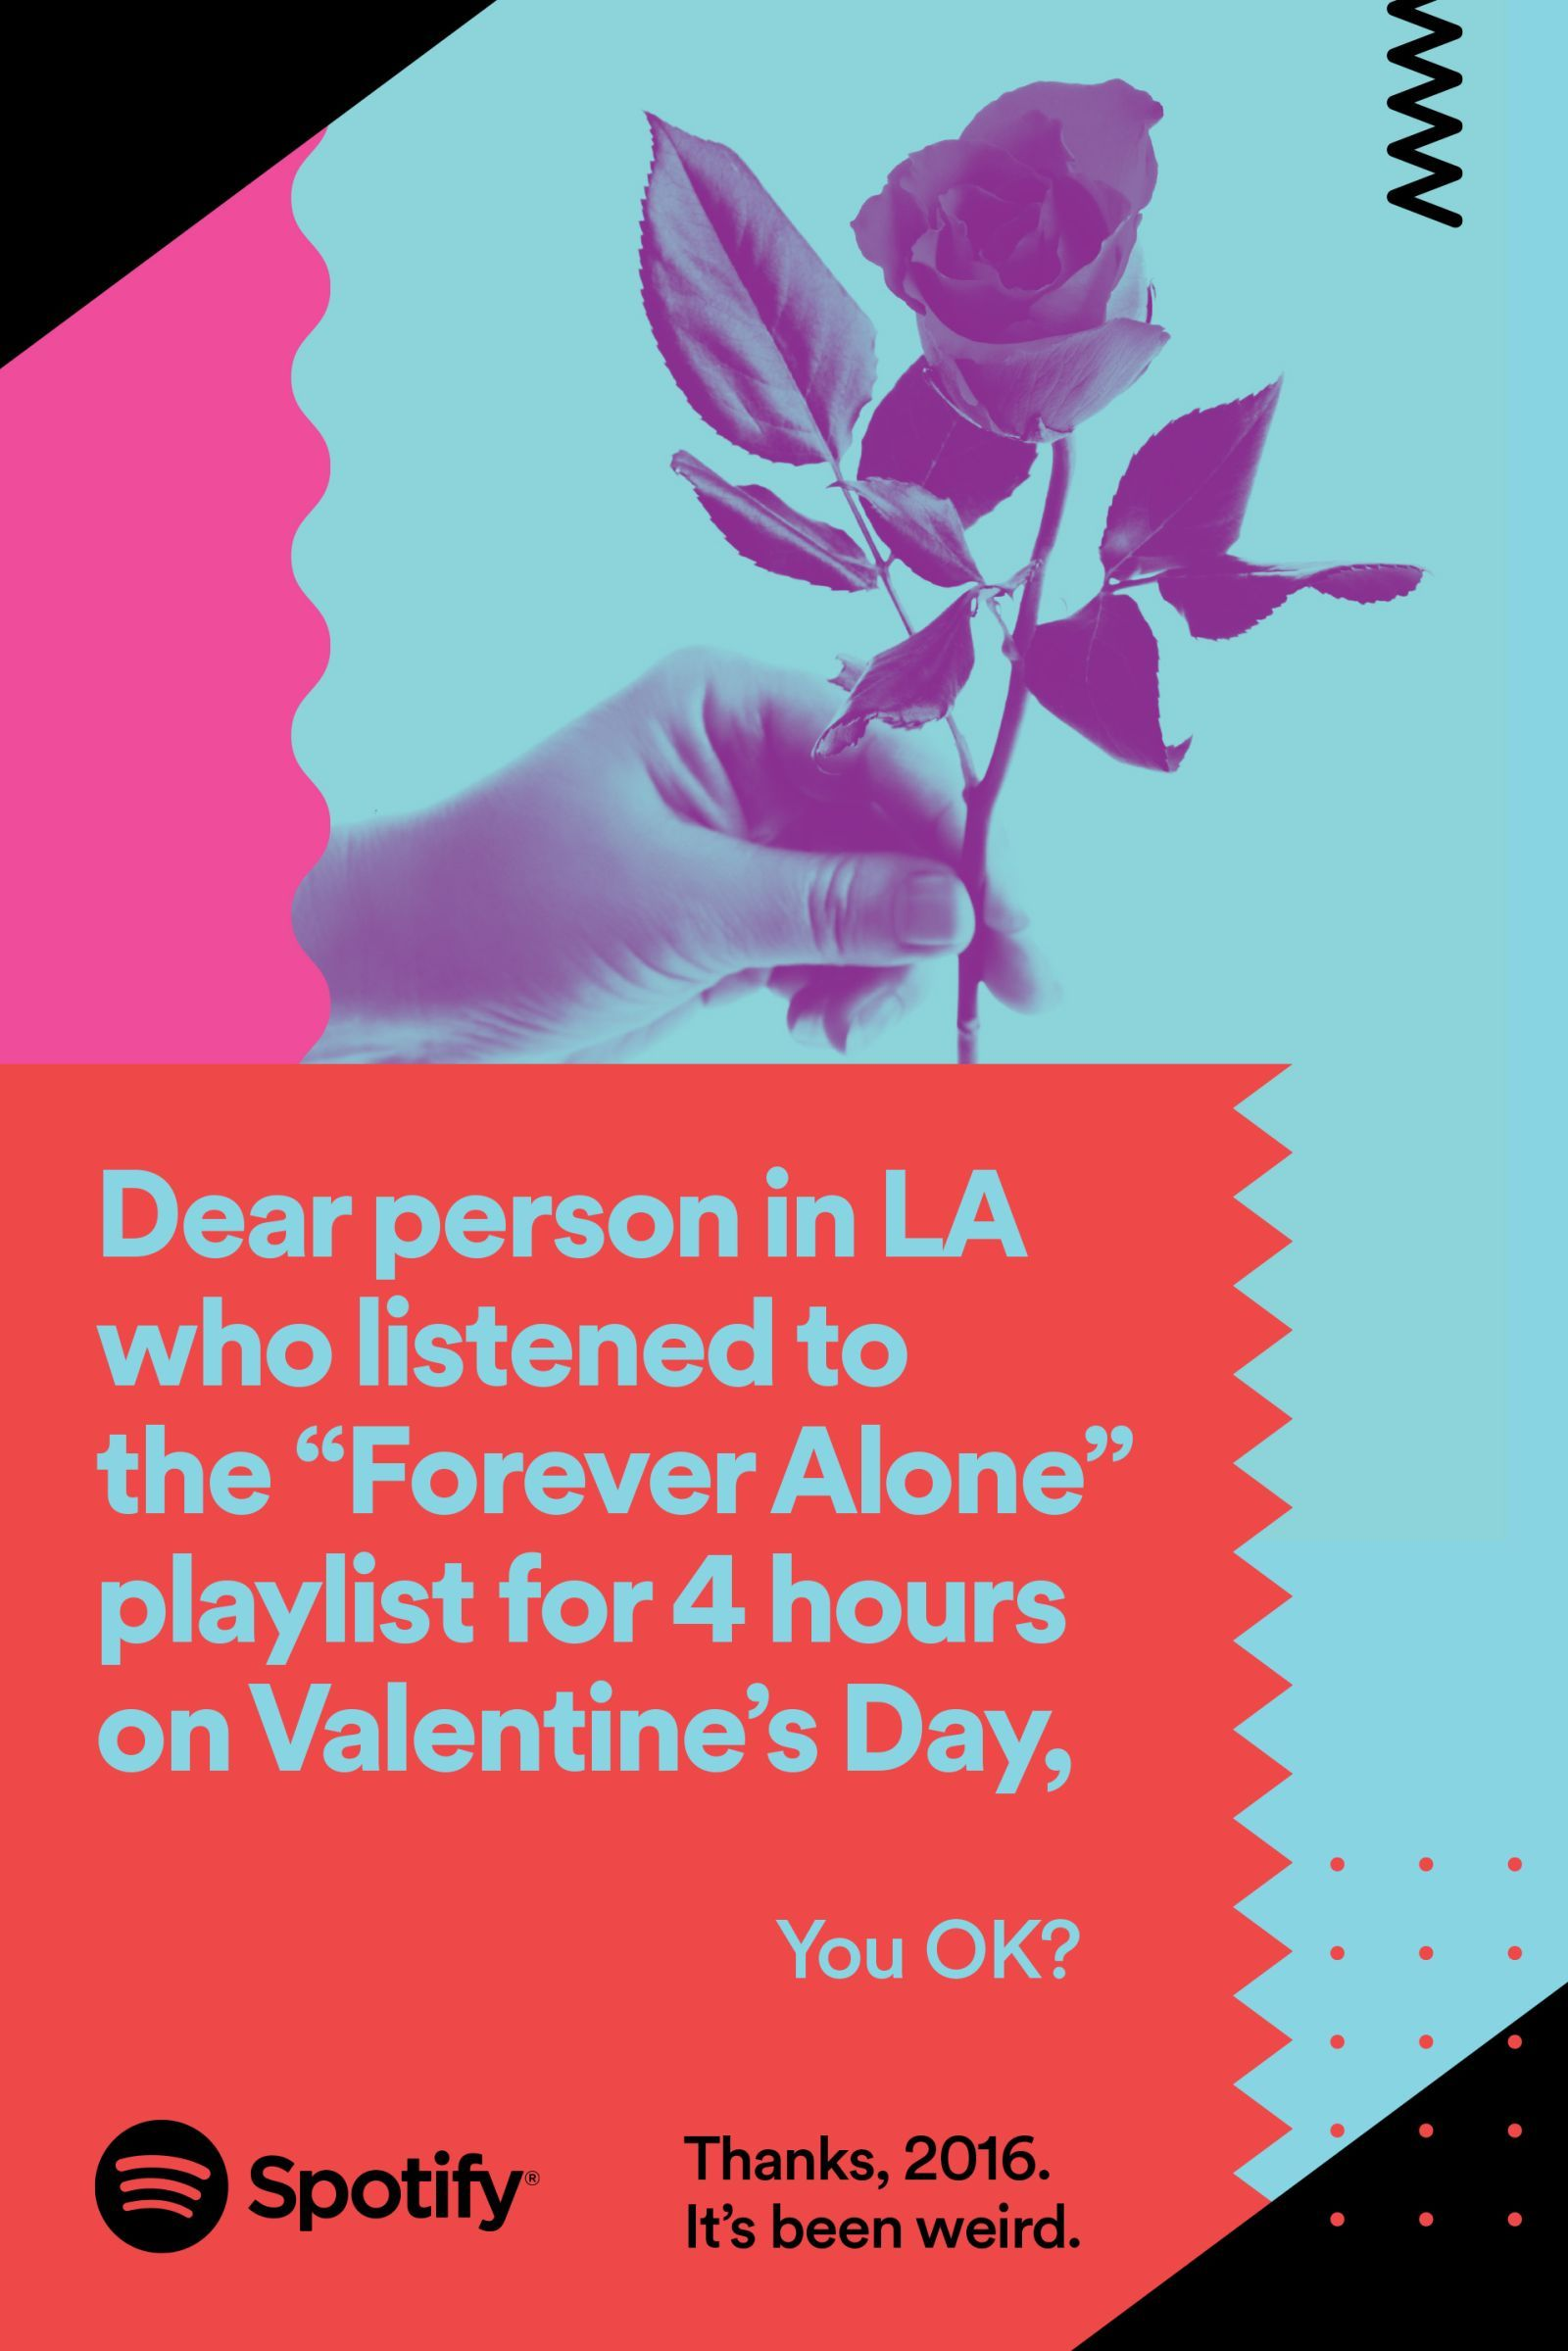 Spotify used listener data to run a hilarious billboard ad